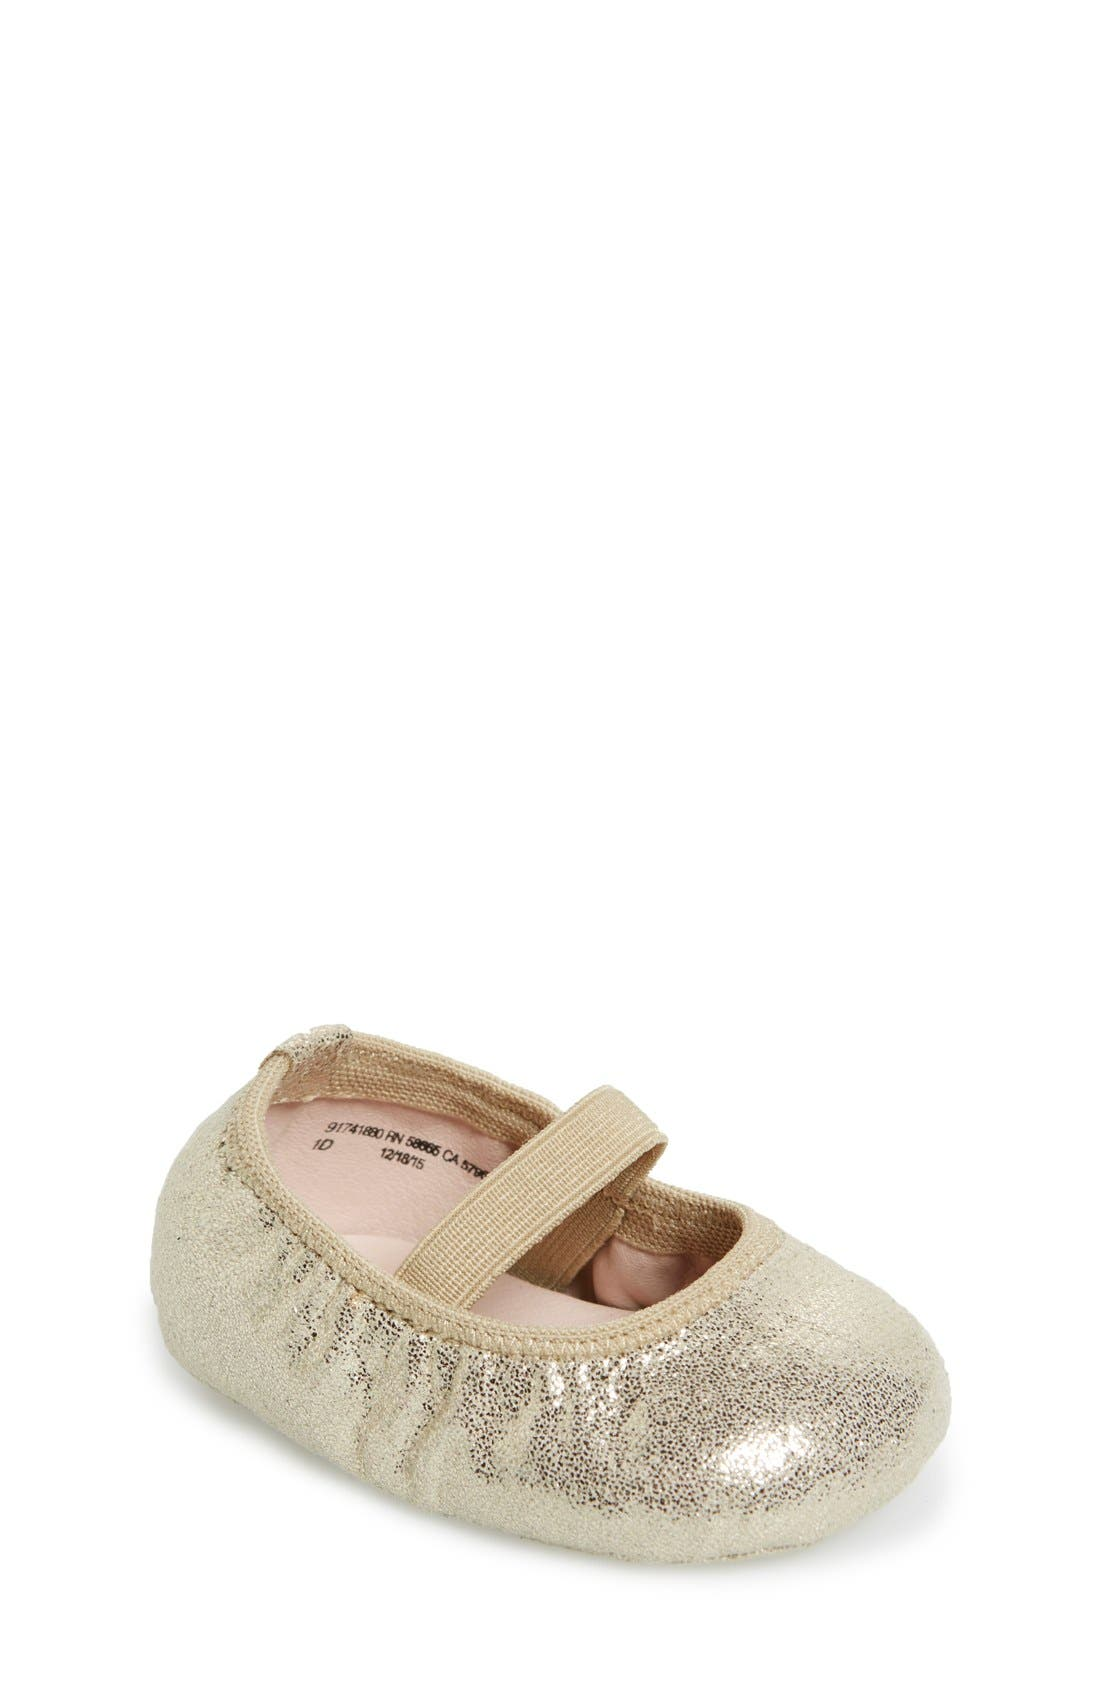 Ruby & Bloom 'Josie' Crib Shoe (Baby)